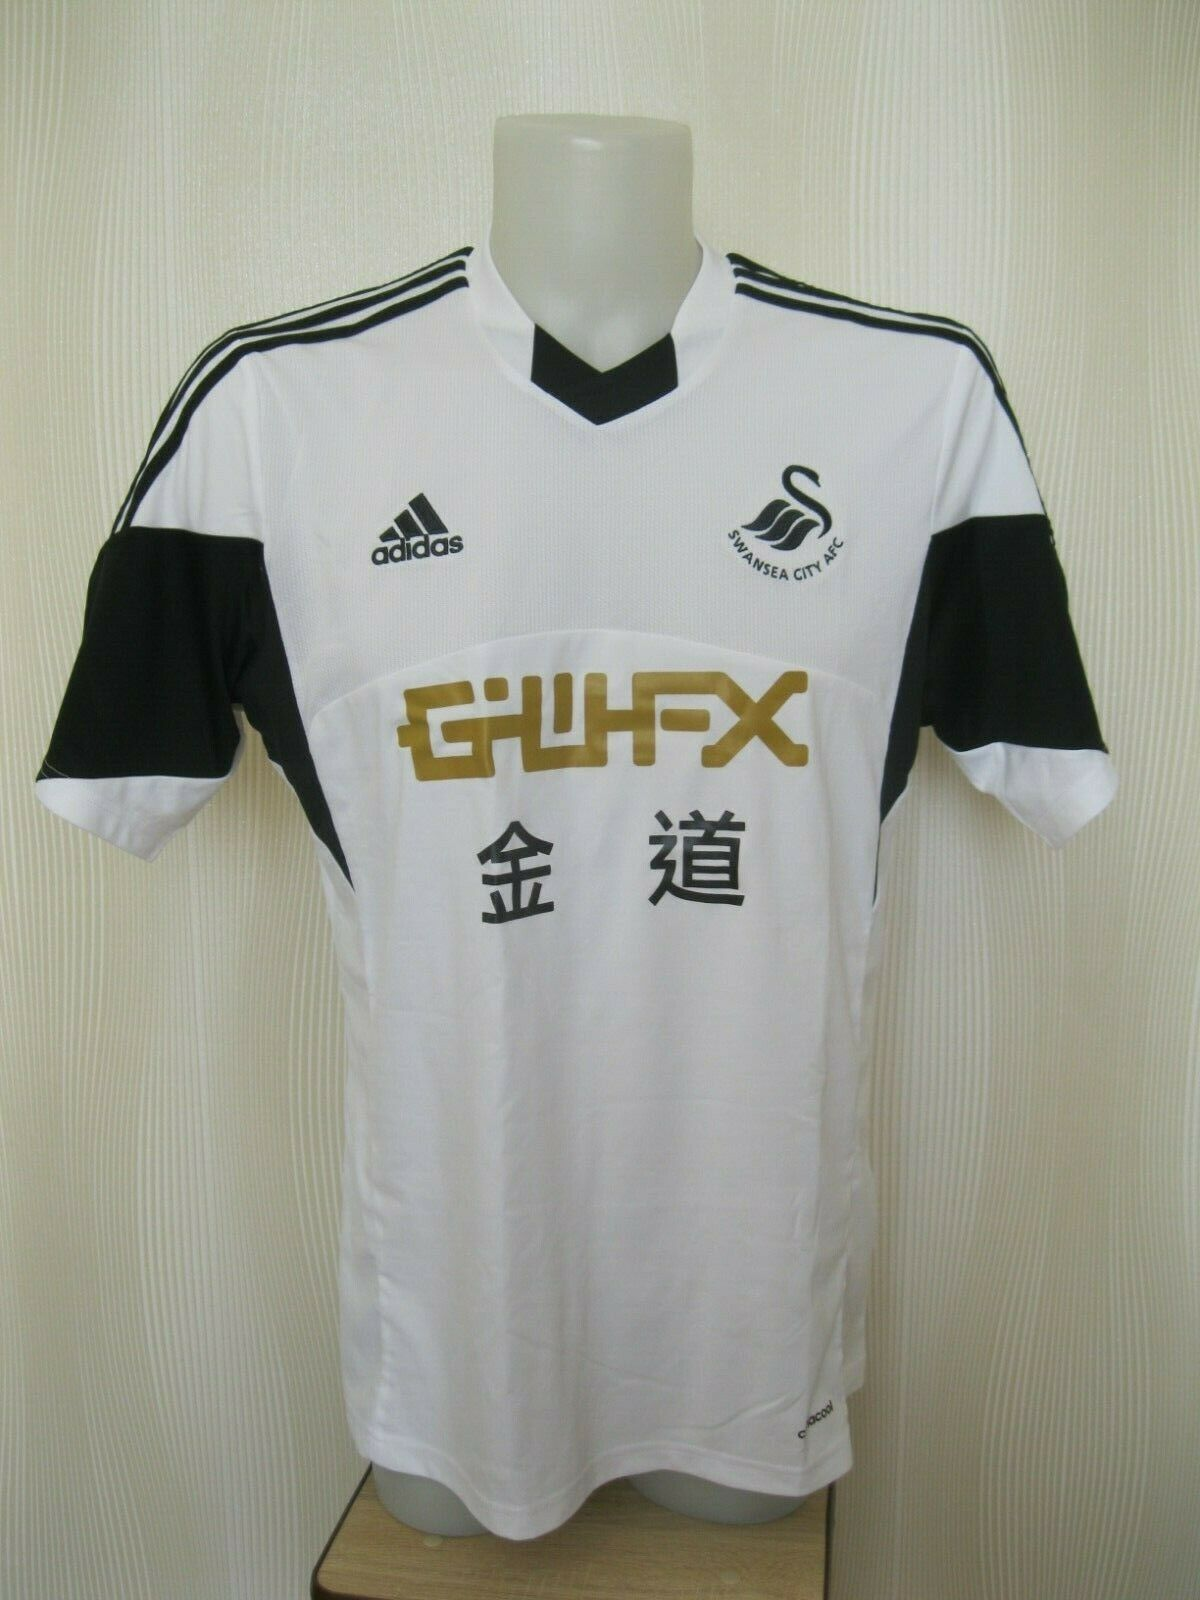 Swansea City 2013/2014 Home Size L Adidas jersey